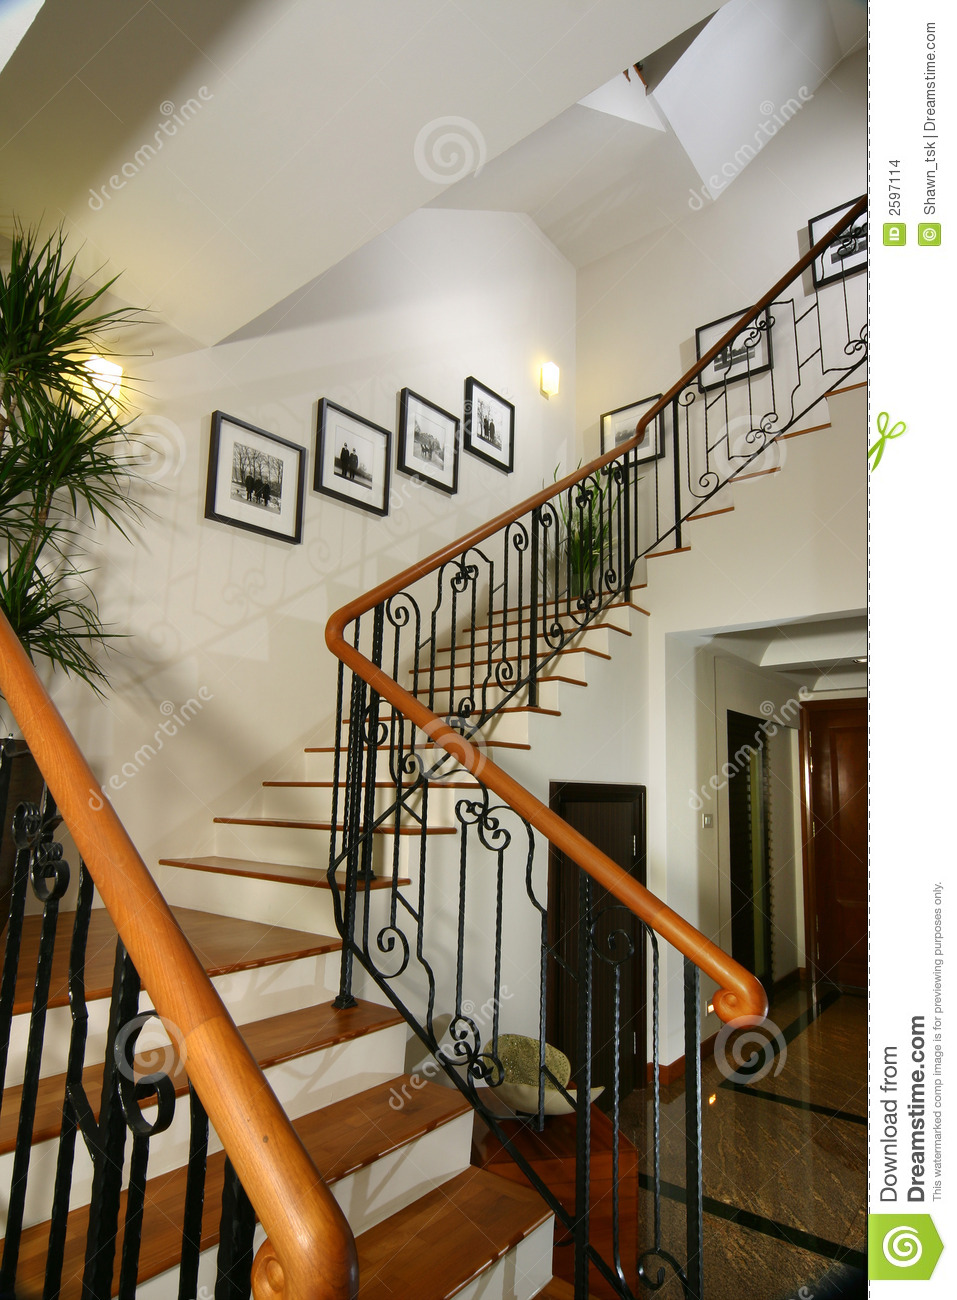 Interior design stairs stock images image 2597114 - Home interior design steps ...